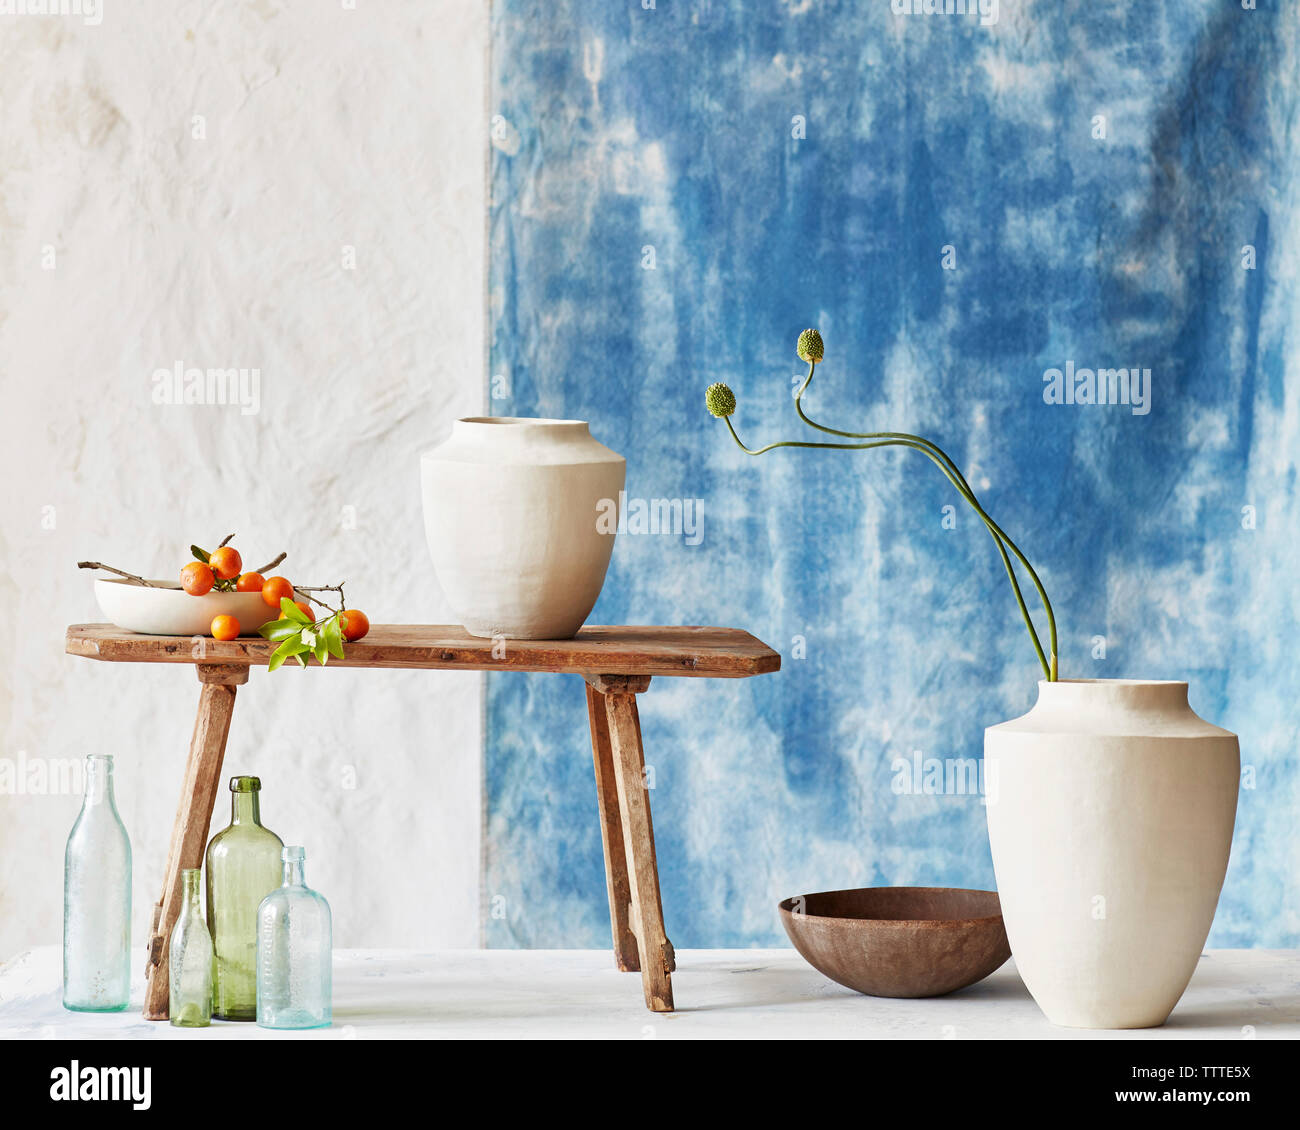 Vases with empty bottles and cherry tomatoes on table against wall Stock Photo